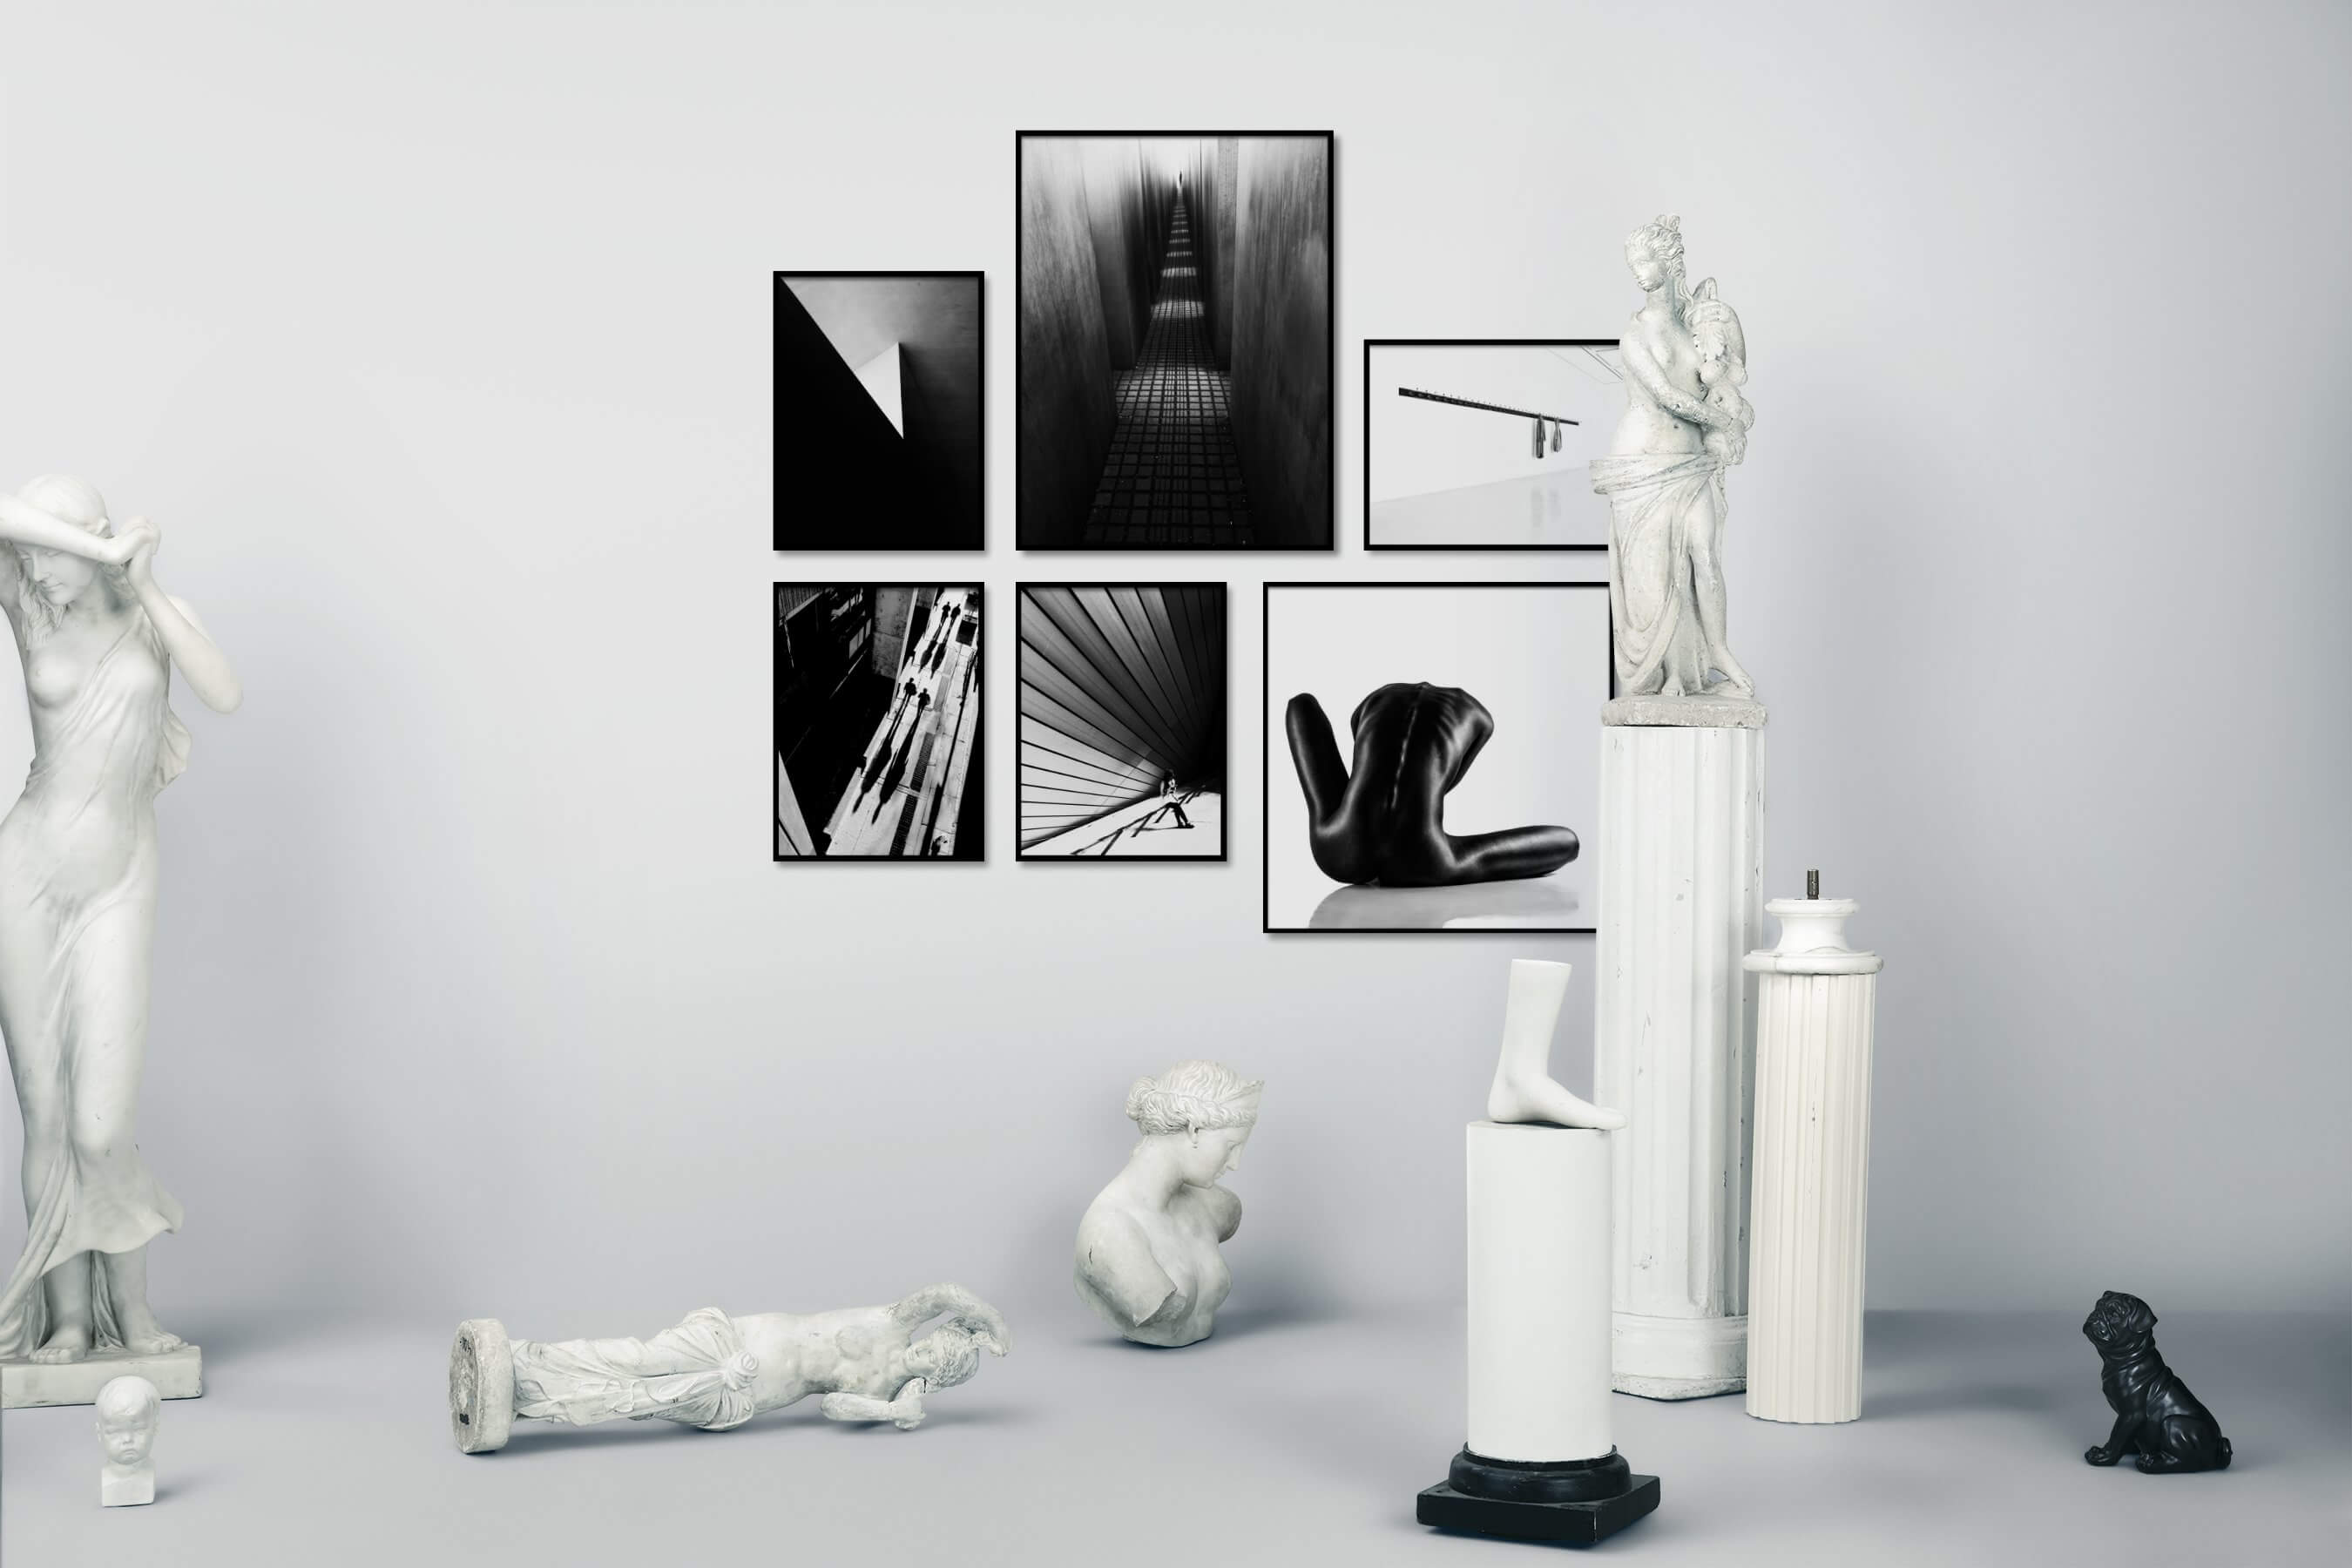 Gallery wall idea with six framed pictures arranged on a wall depicting Black & White, For the Minimalist, For the Moderate, City Life, Fashion & Beauty, Bright Tones, and Artsy